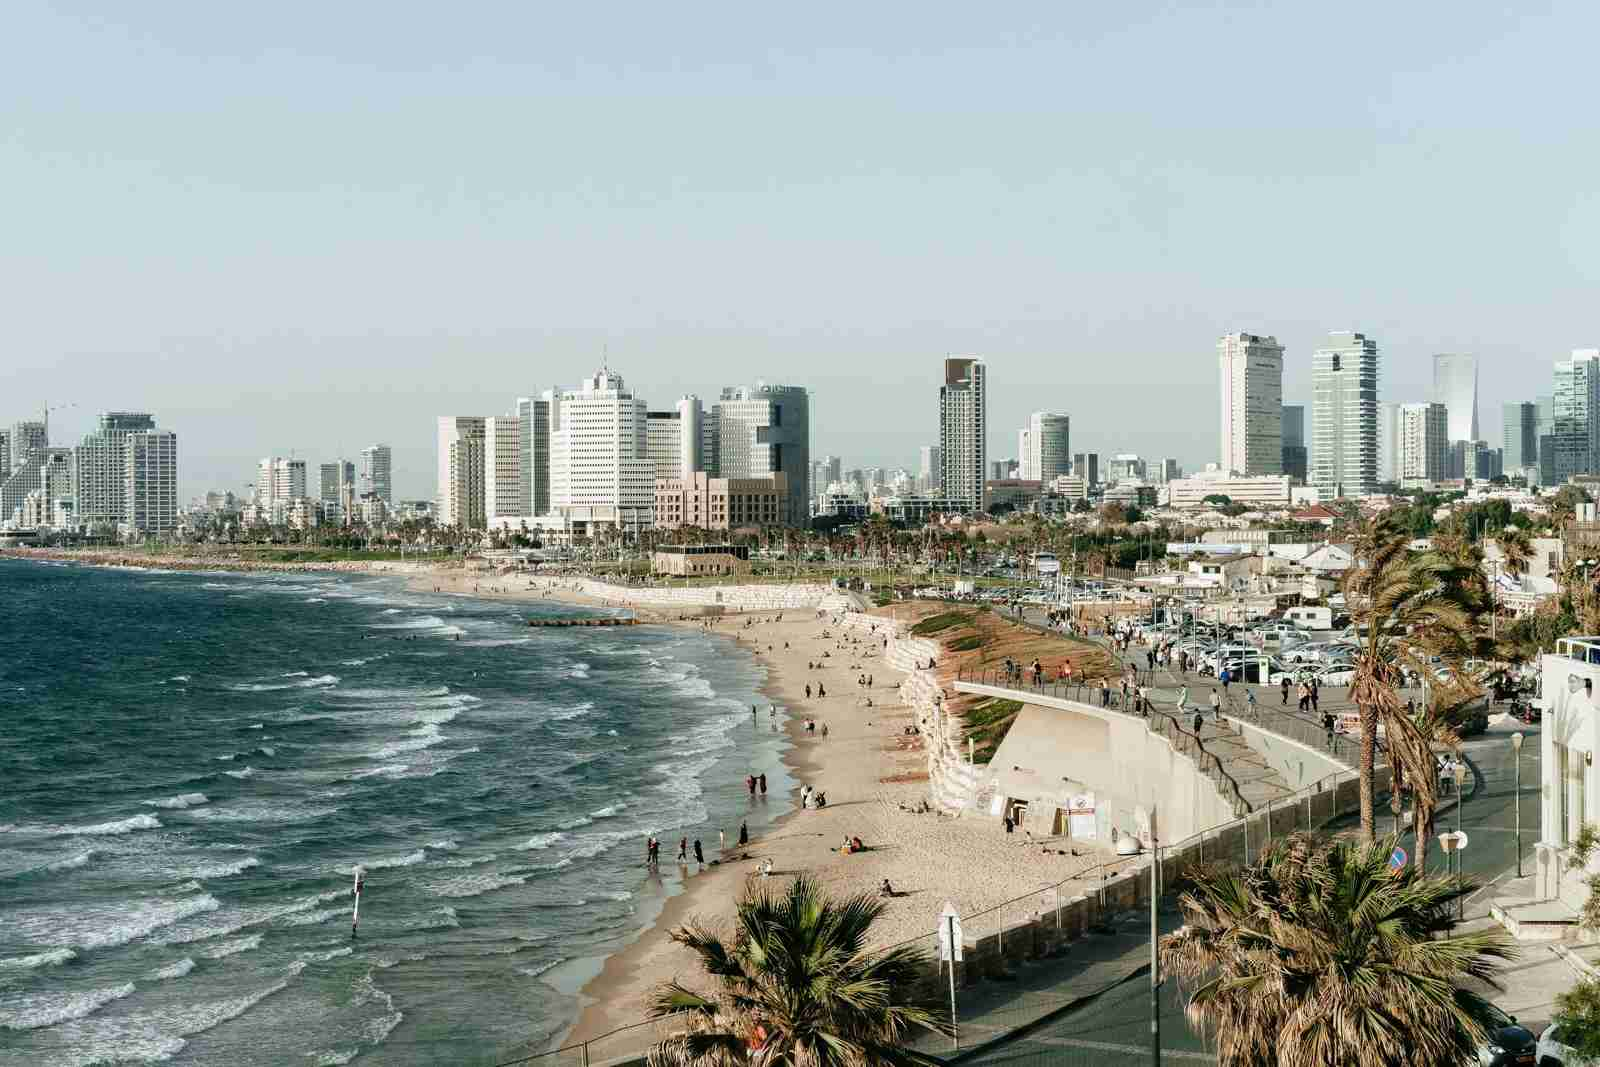 The city overlooks the beach in Tel Aviv-Yafo, Israel. (Photo by Adam Jang/Unsplash)